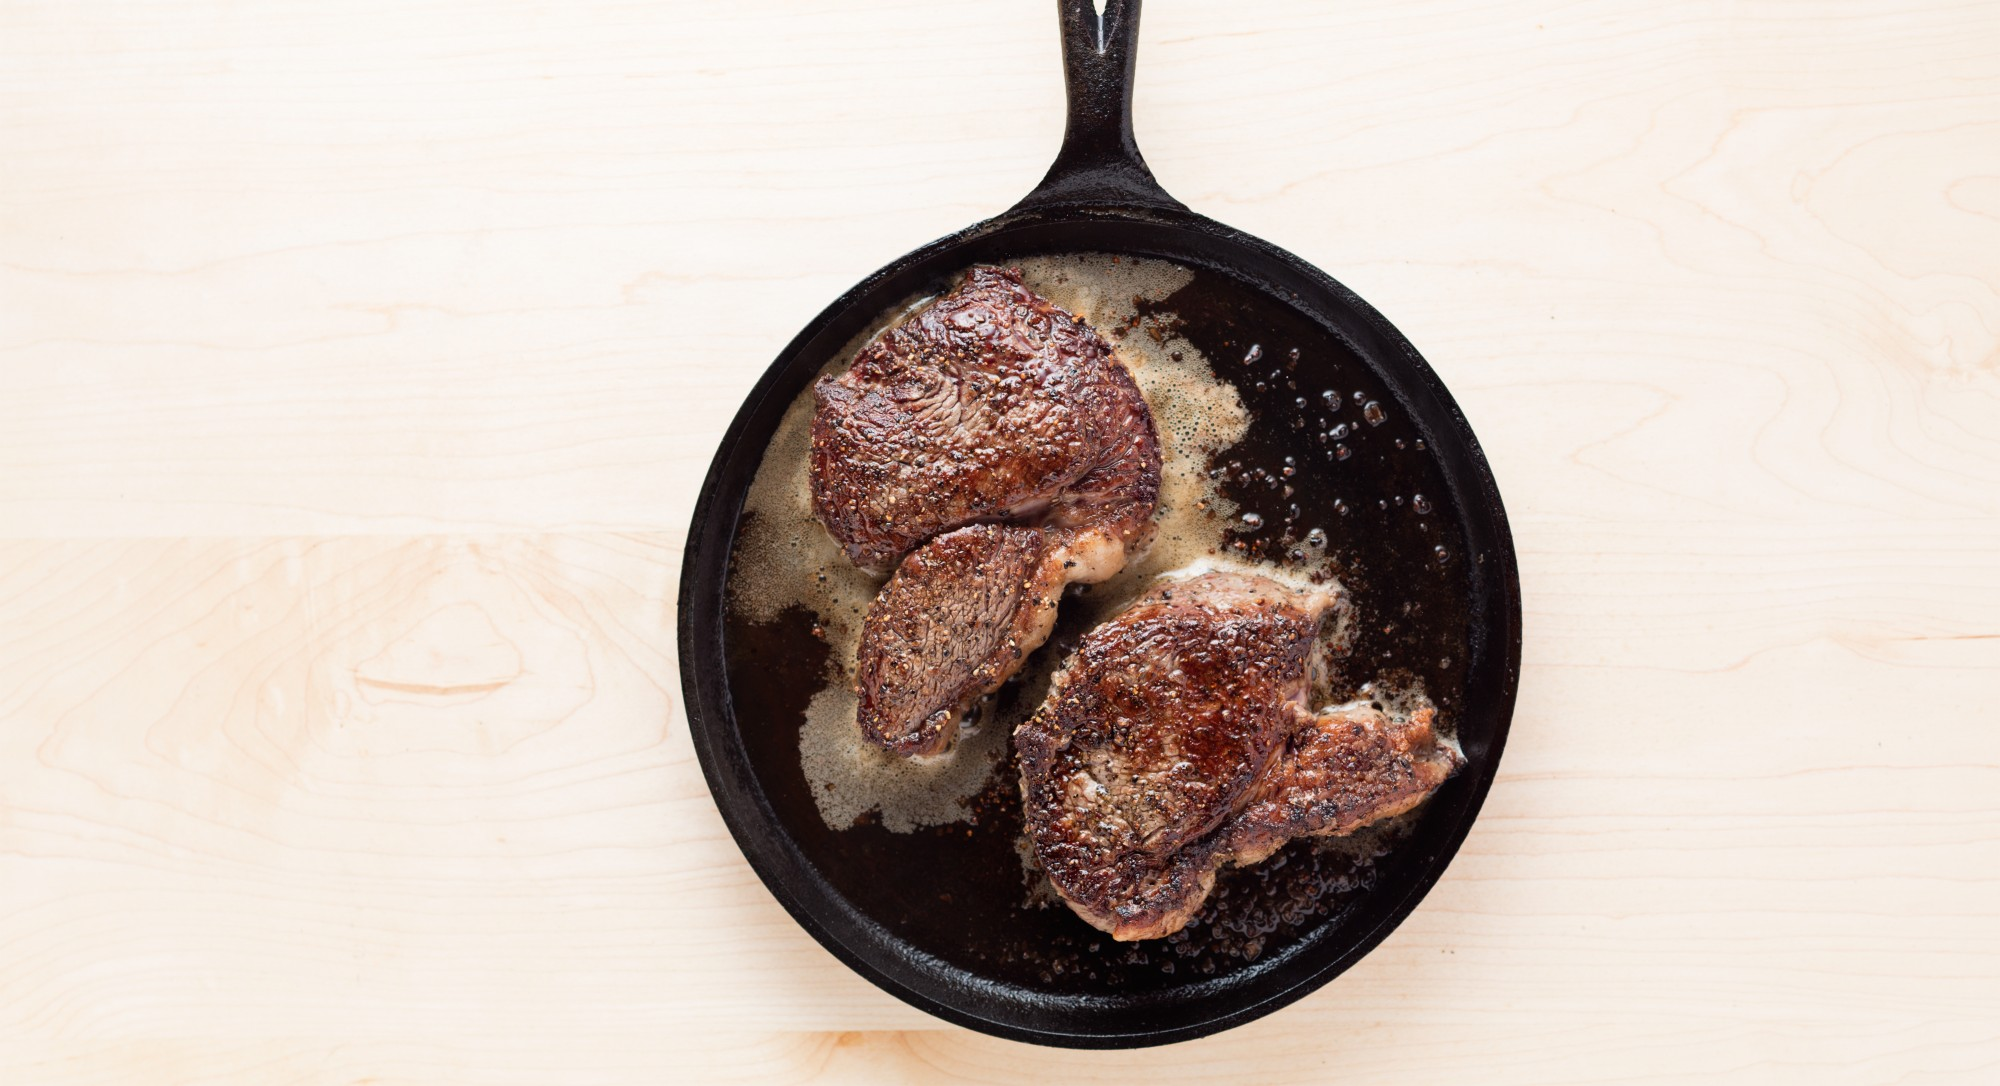 Kitchen Hack: How to Cook The Best Steak You've Ever Had